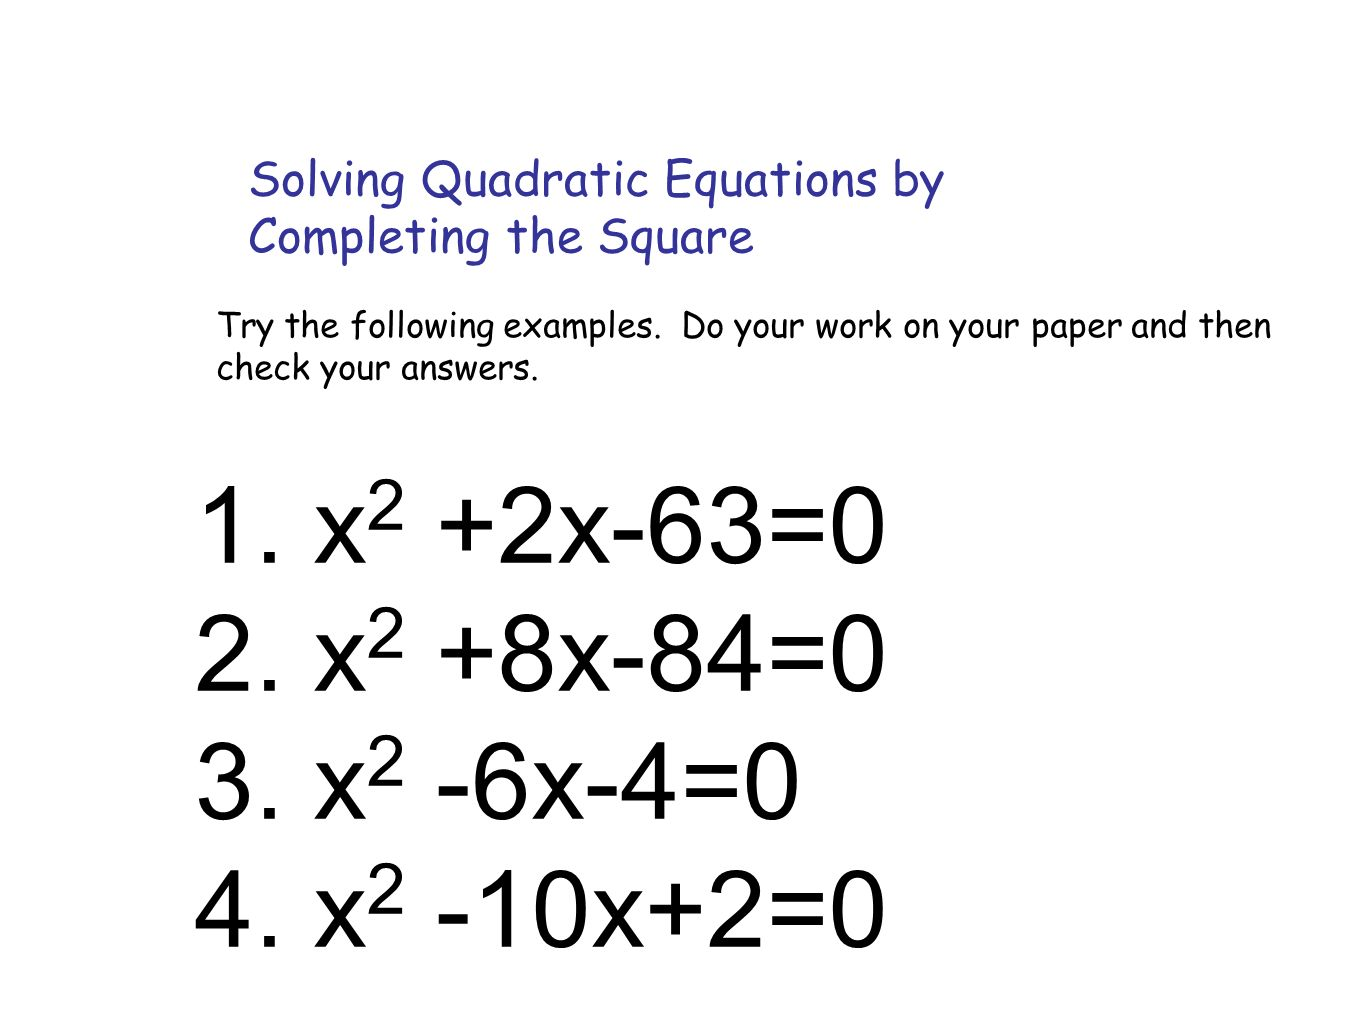 Solving Quadratic Equations By Completing The Square Examples With Answers